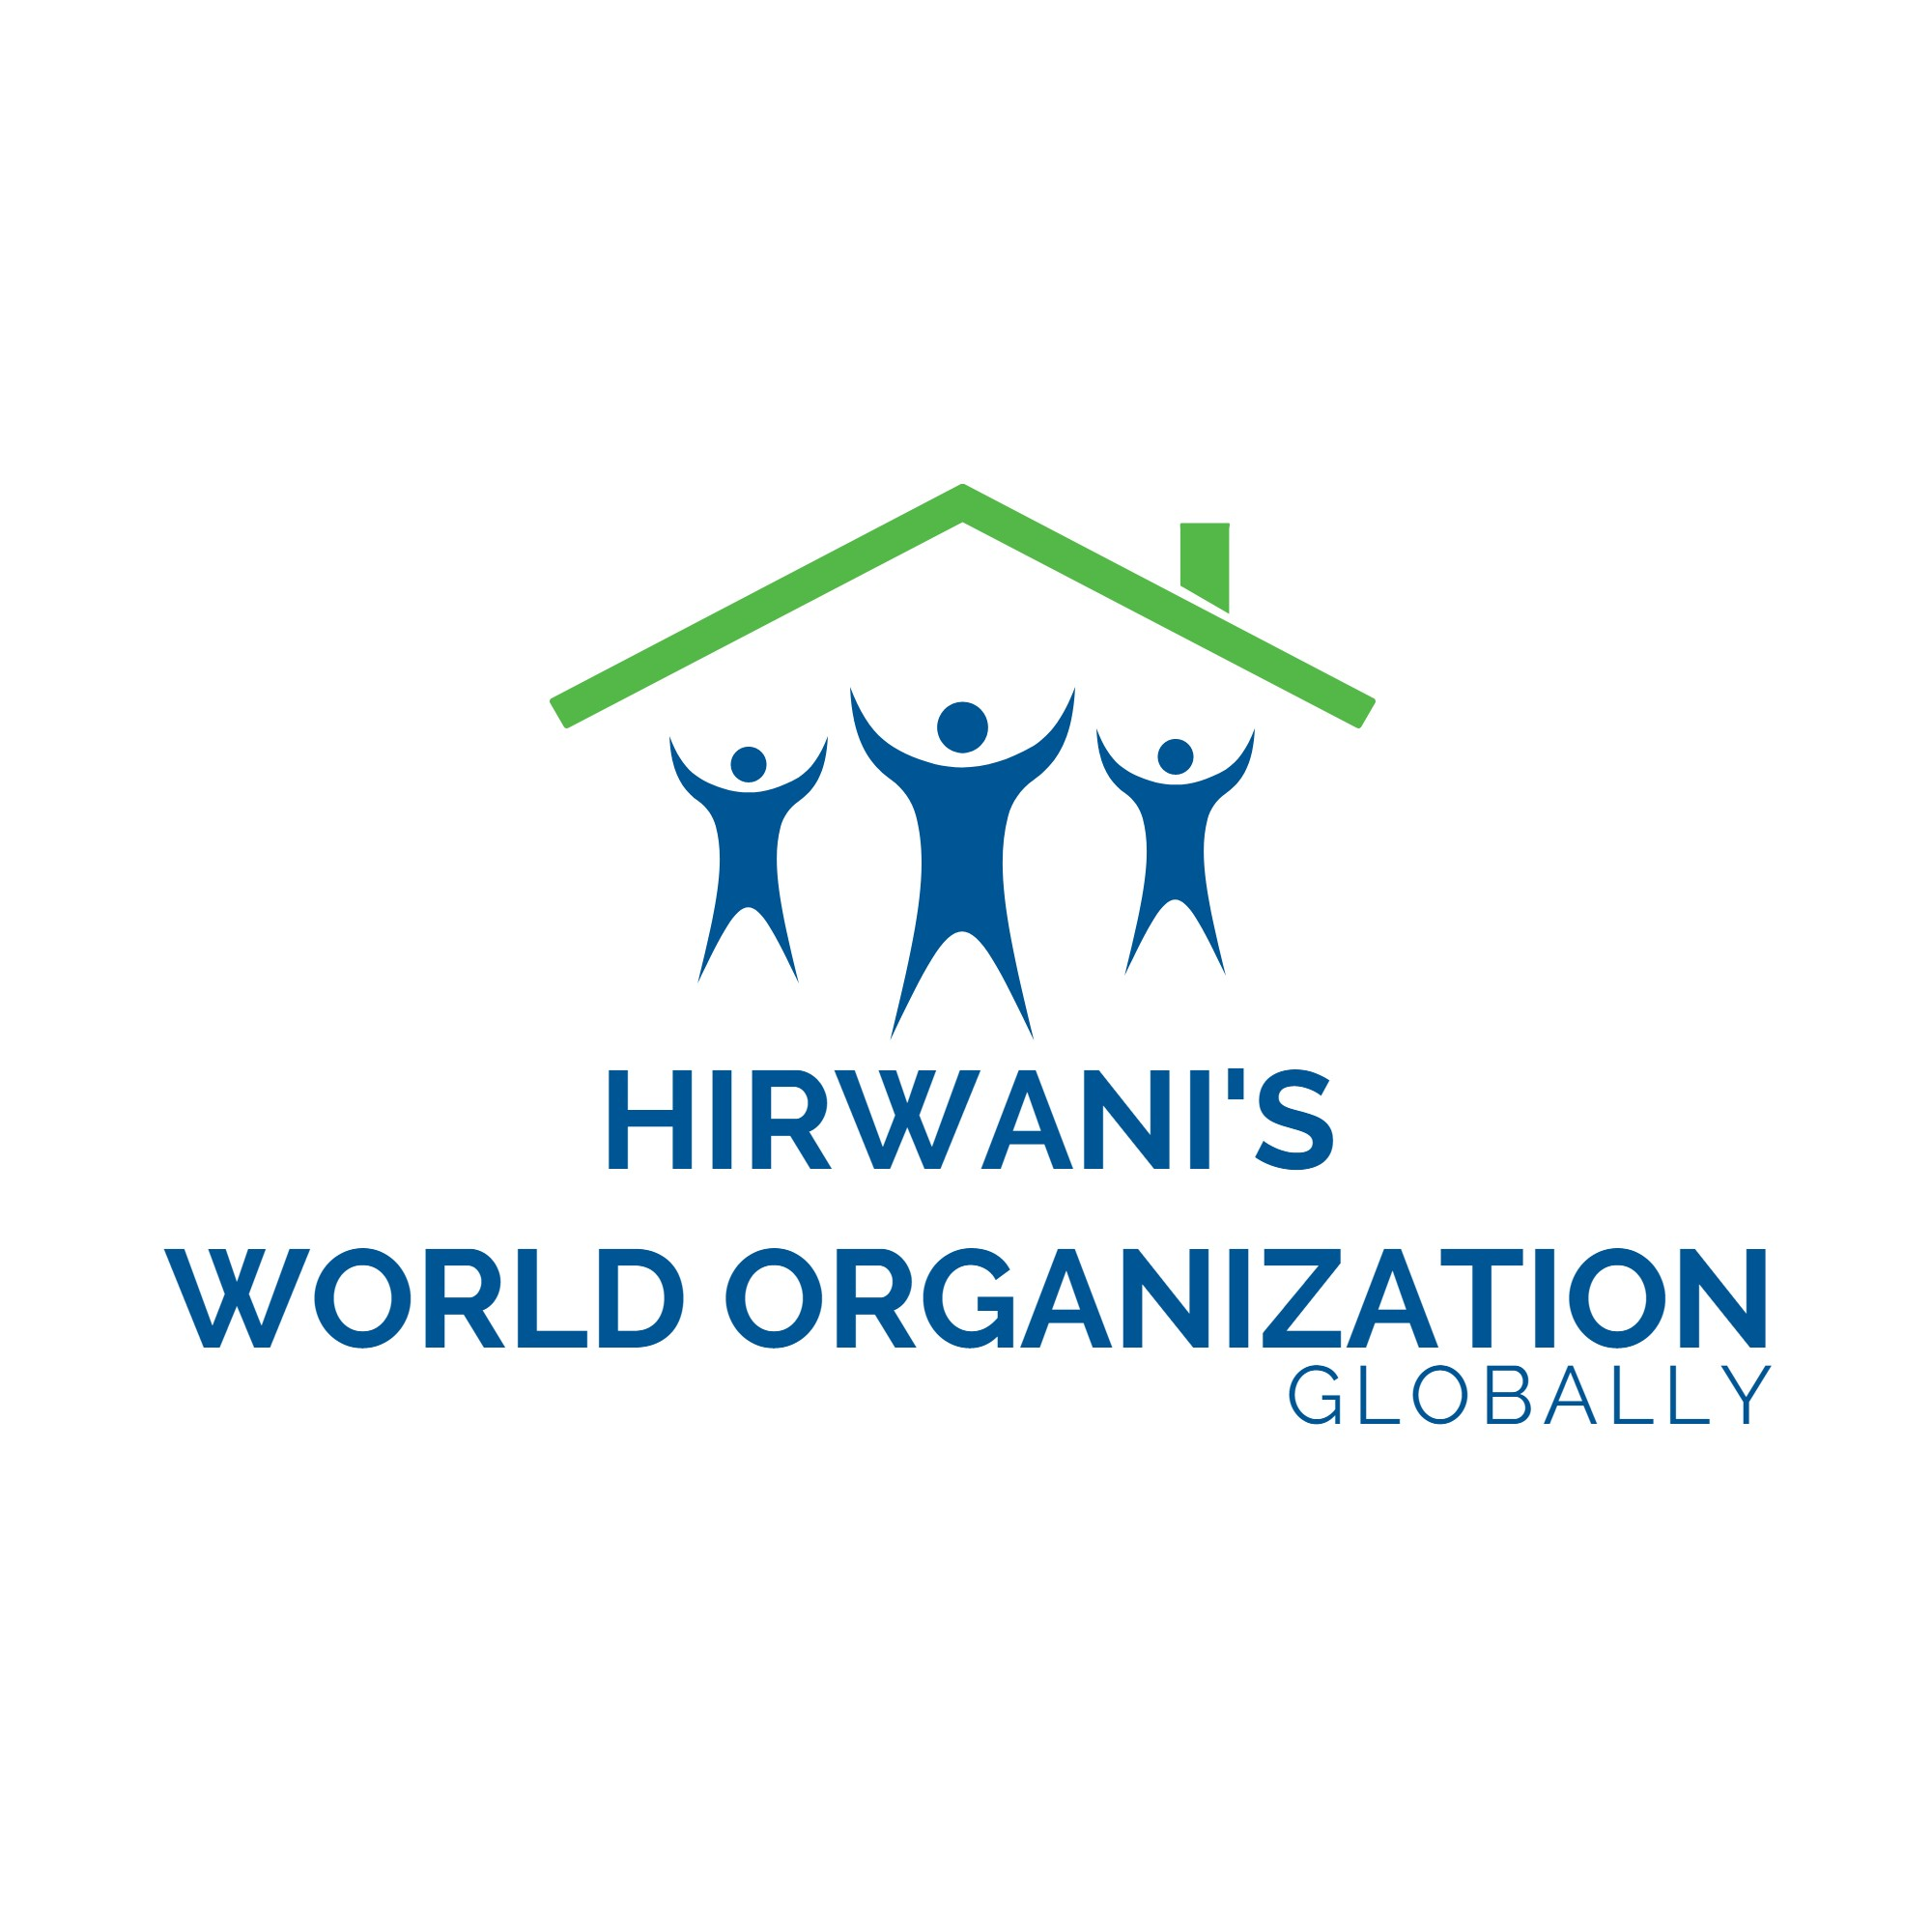 Hirwani's World Organization